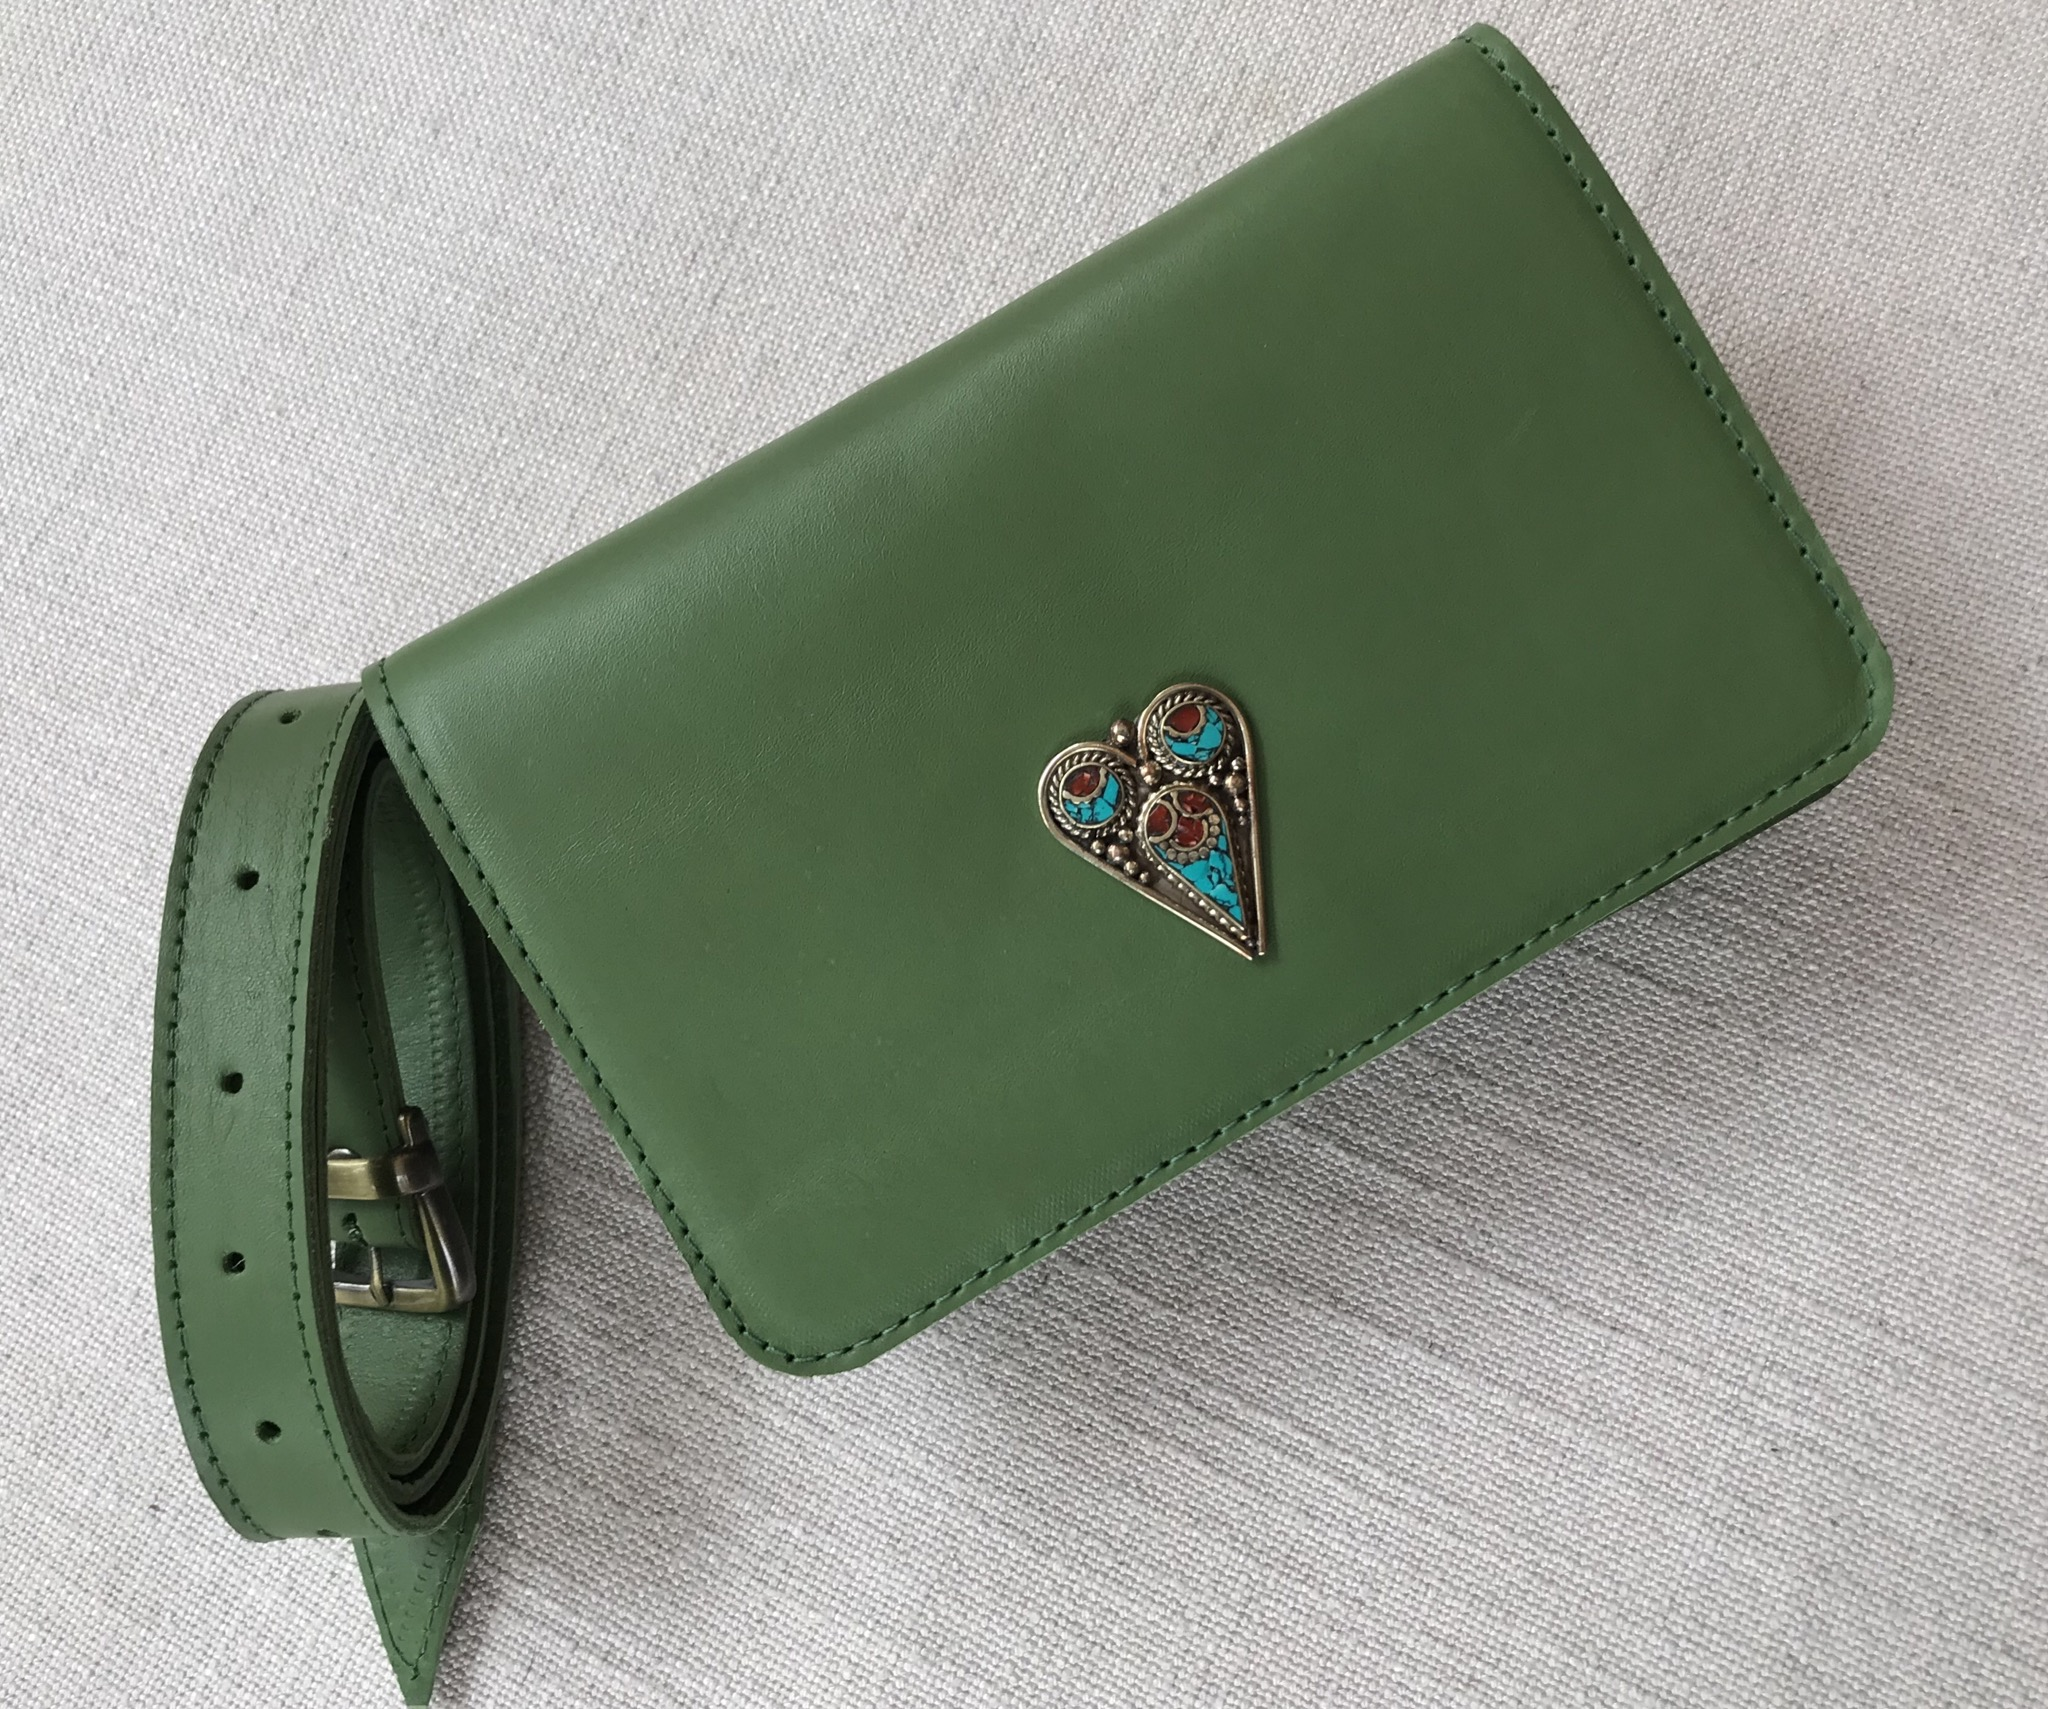 Beltbag Jewelery leather green